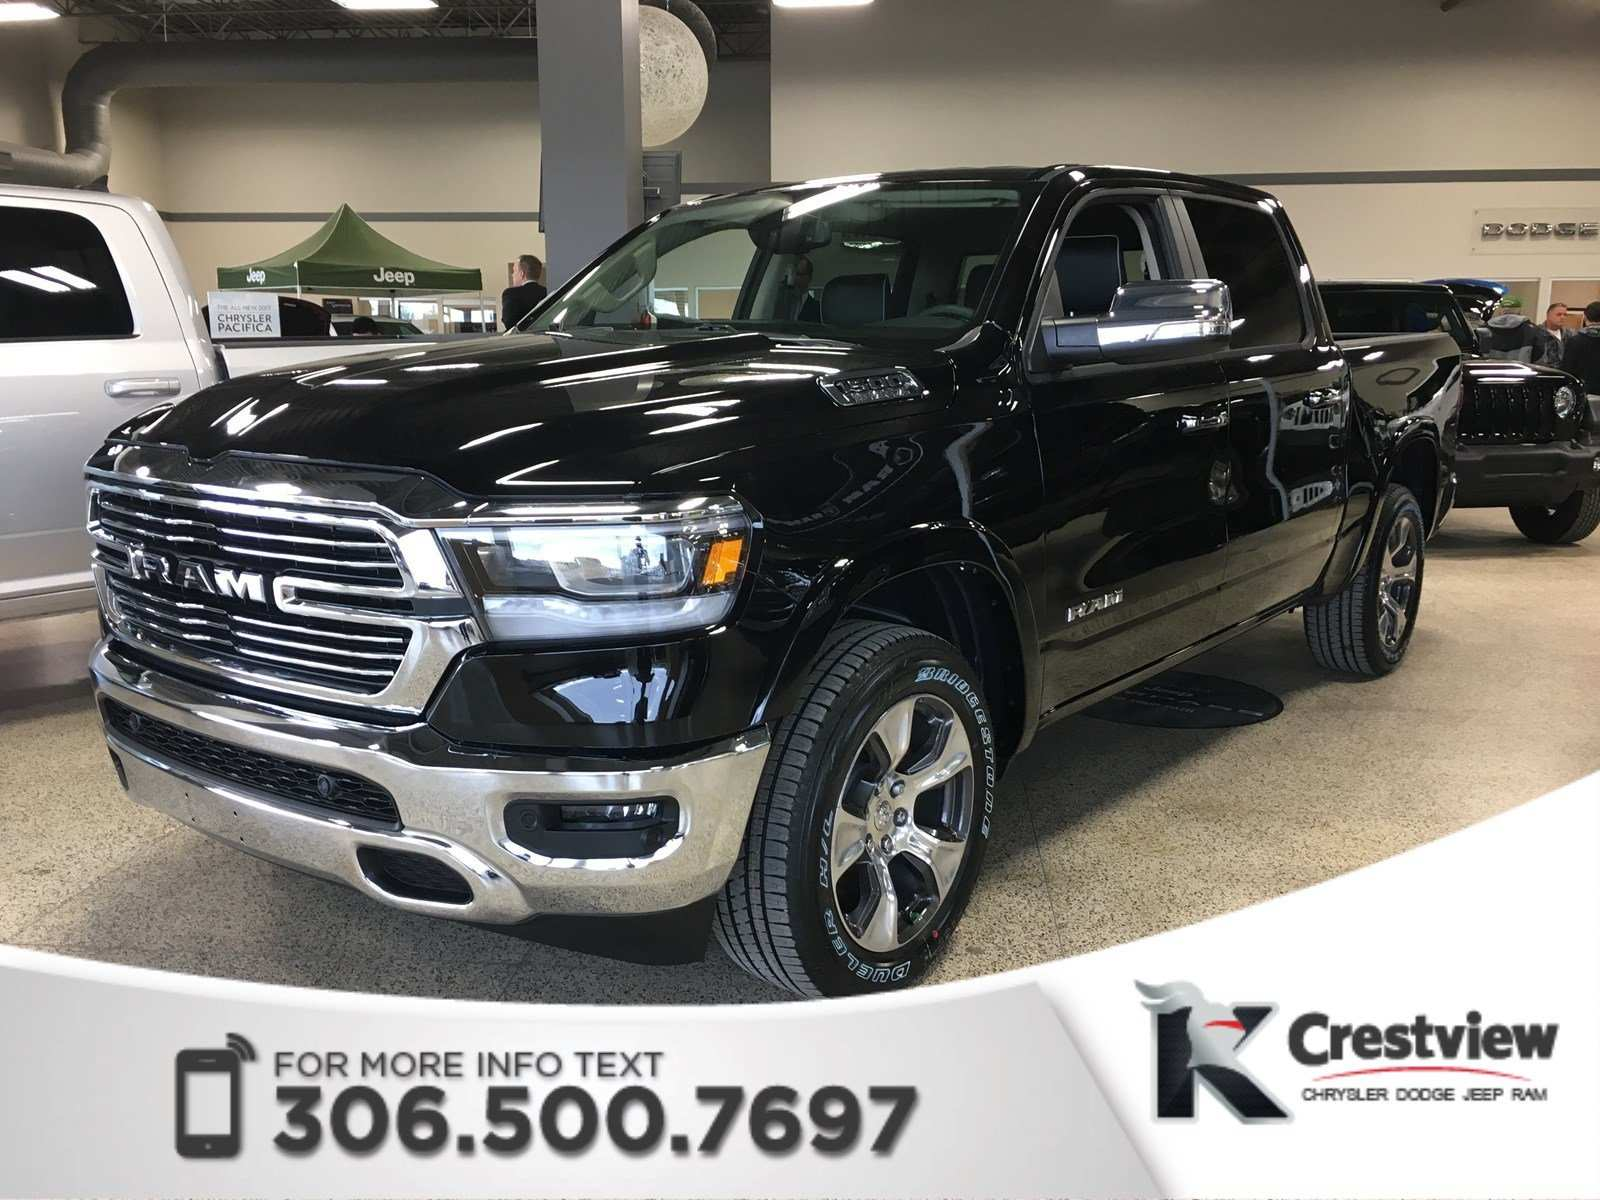 96 Gallery of 2019 Dodge Ram 1500 Performance and New Engine for 2019 Dodge Ram 1500